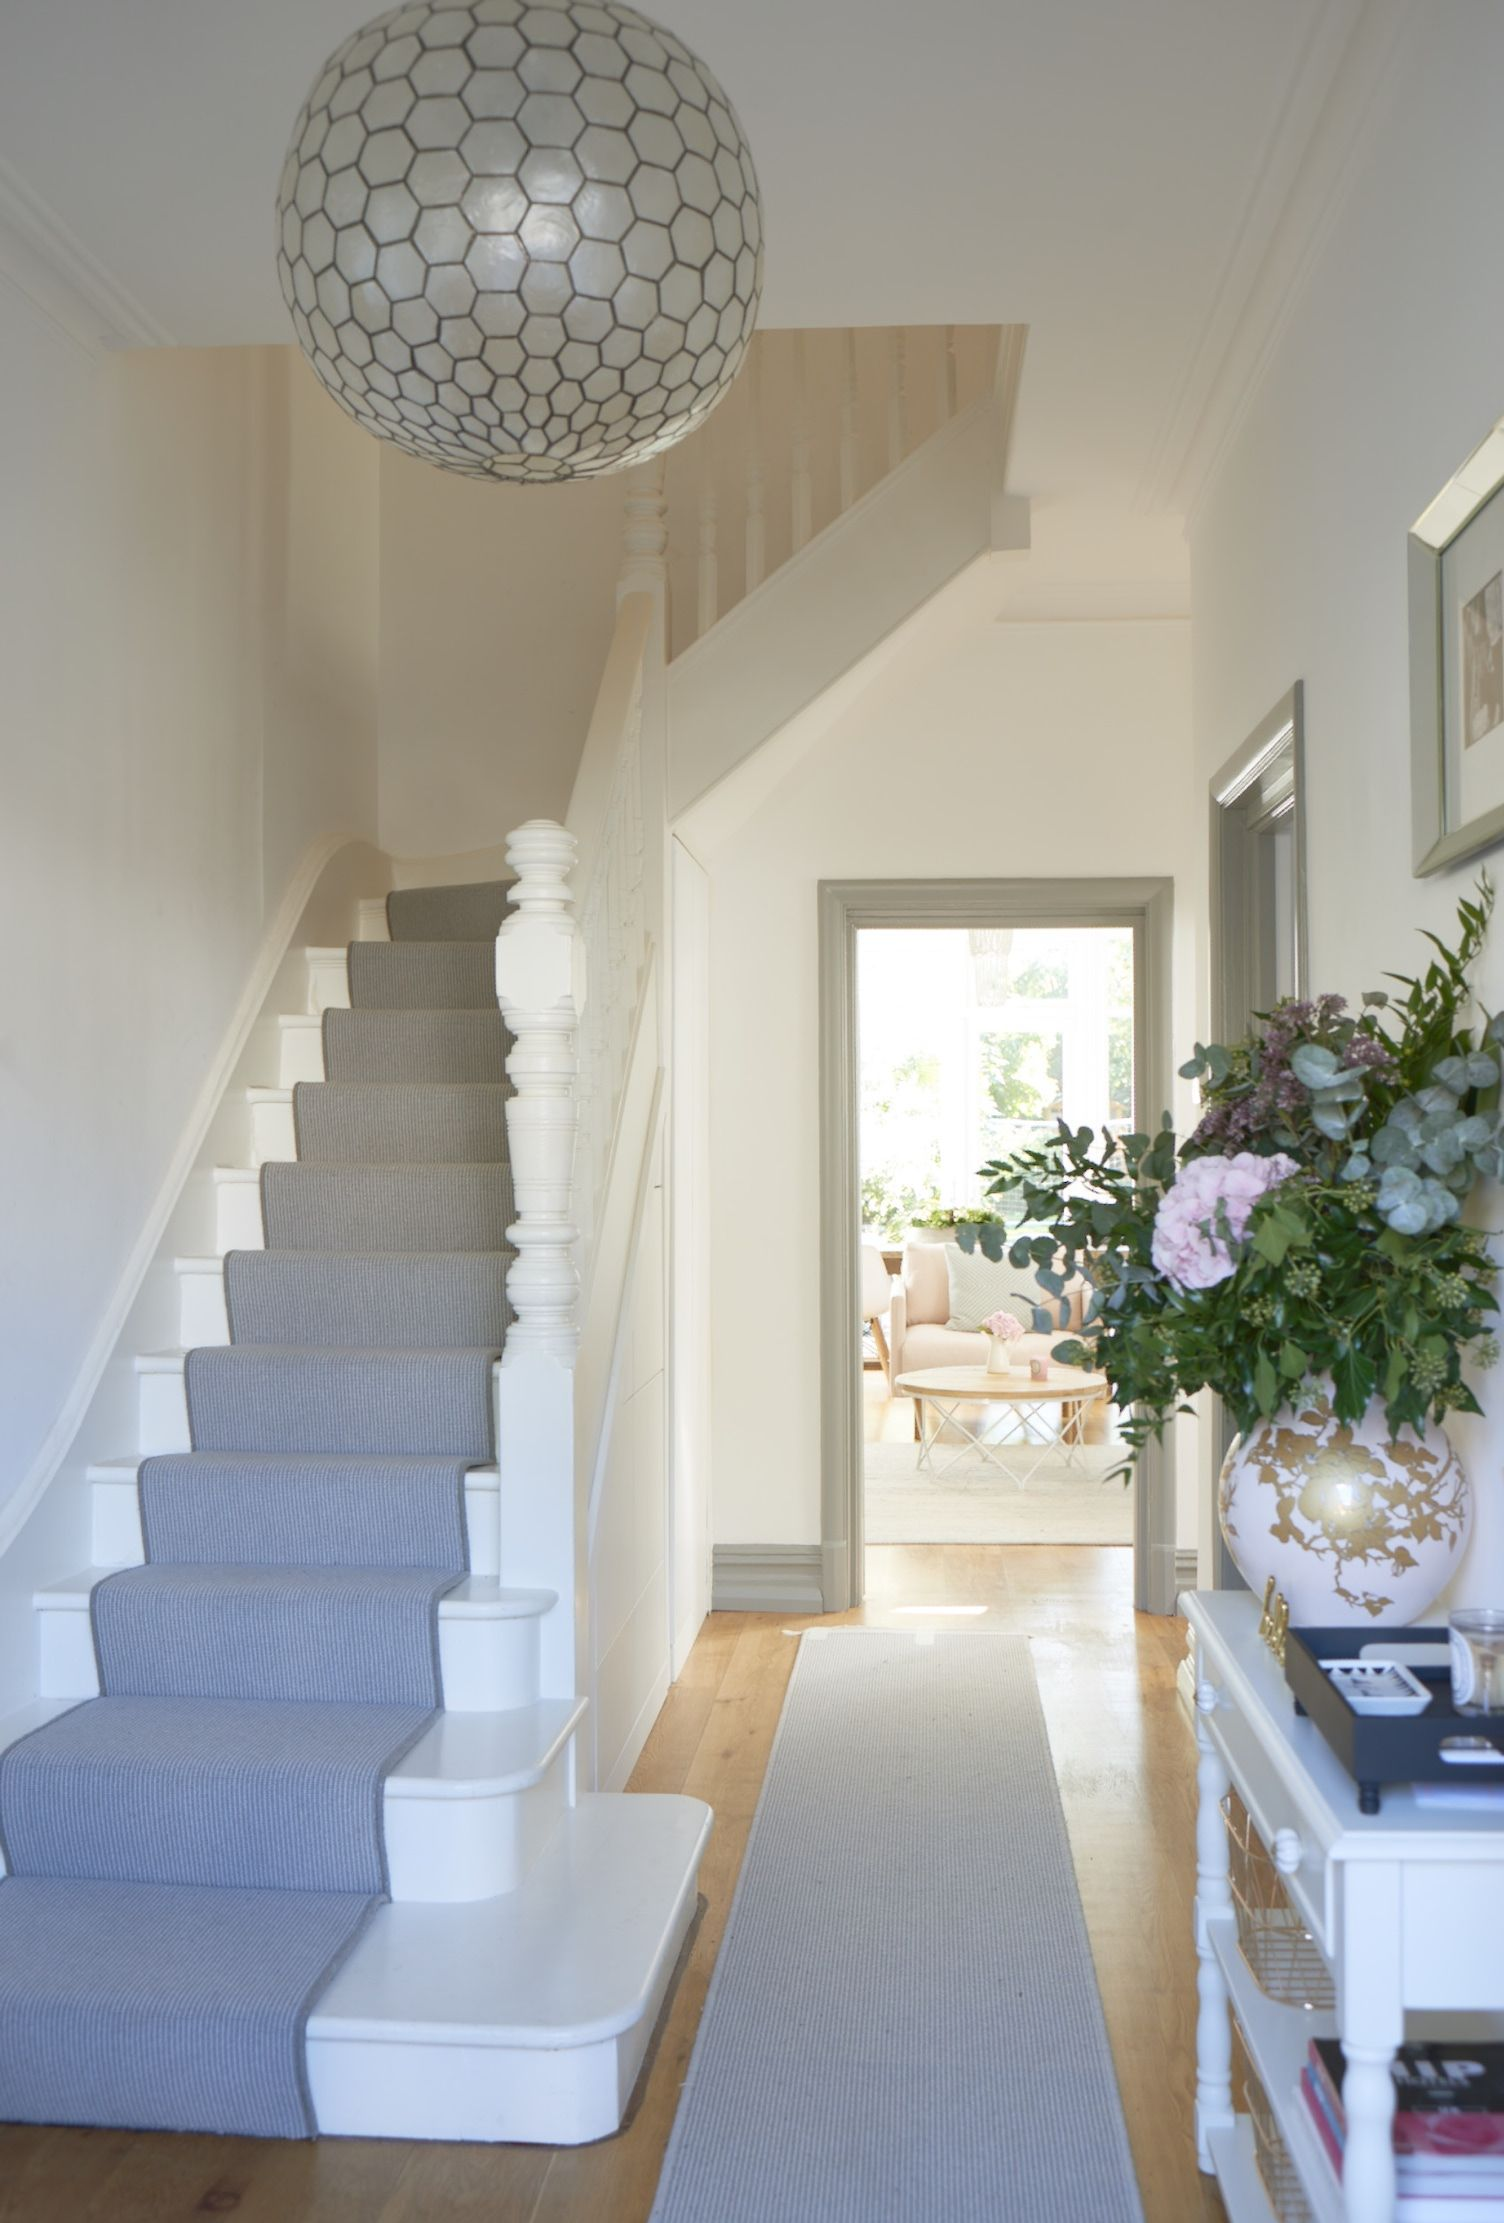 27 Painted Staircase Ideas Which Make Your Stairs Look New   Stairs     Stairs painted diy  ideas  Stairs ideas  Tags   Stairs How to Paint Stairs   Stairs painted art  painted stairs ideas  painted stairs ideas staircase